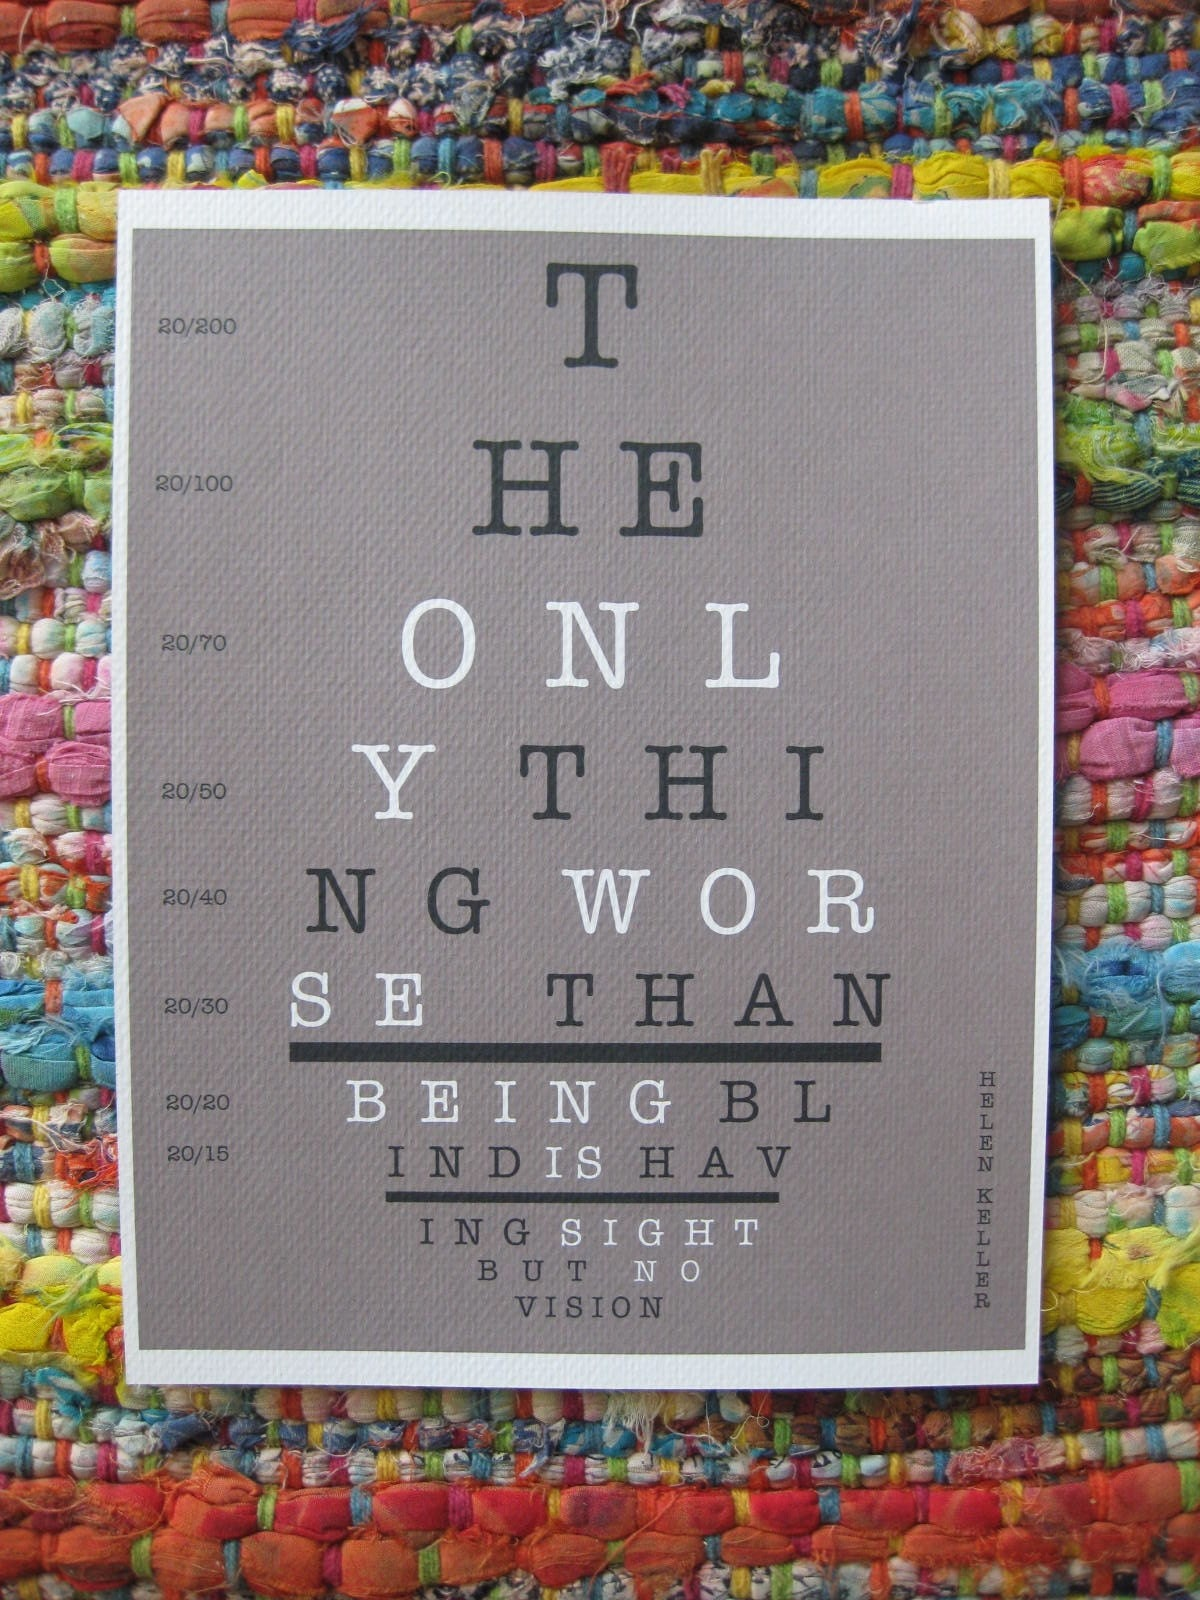 Helen Keller Eye Chart Quote - 8.5x11 Textured Stock Print